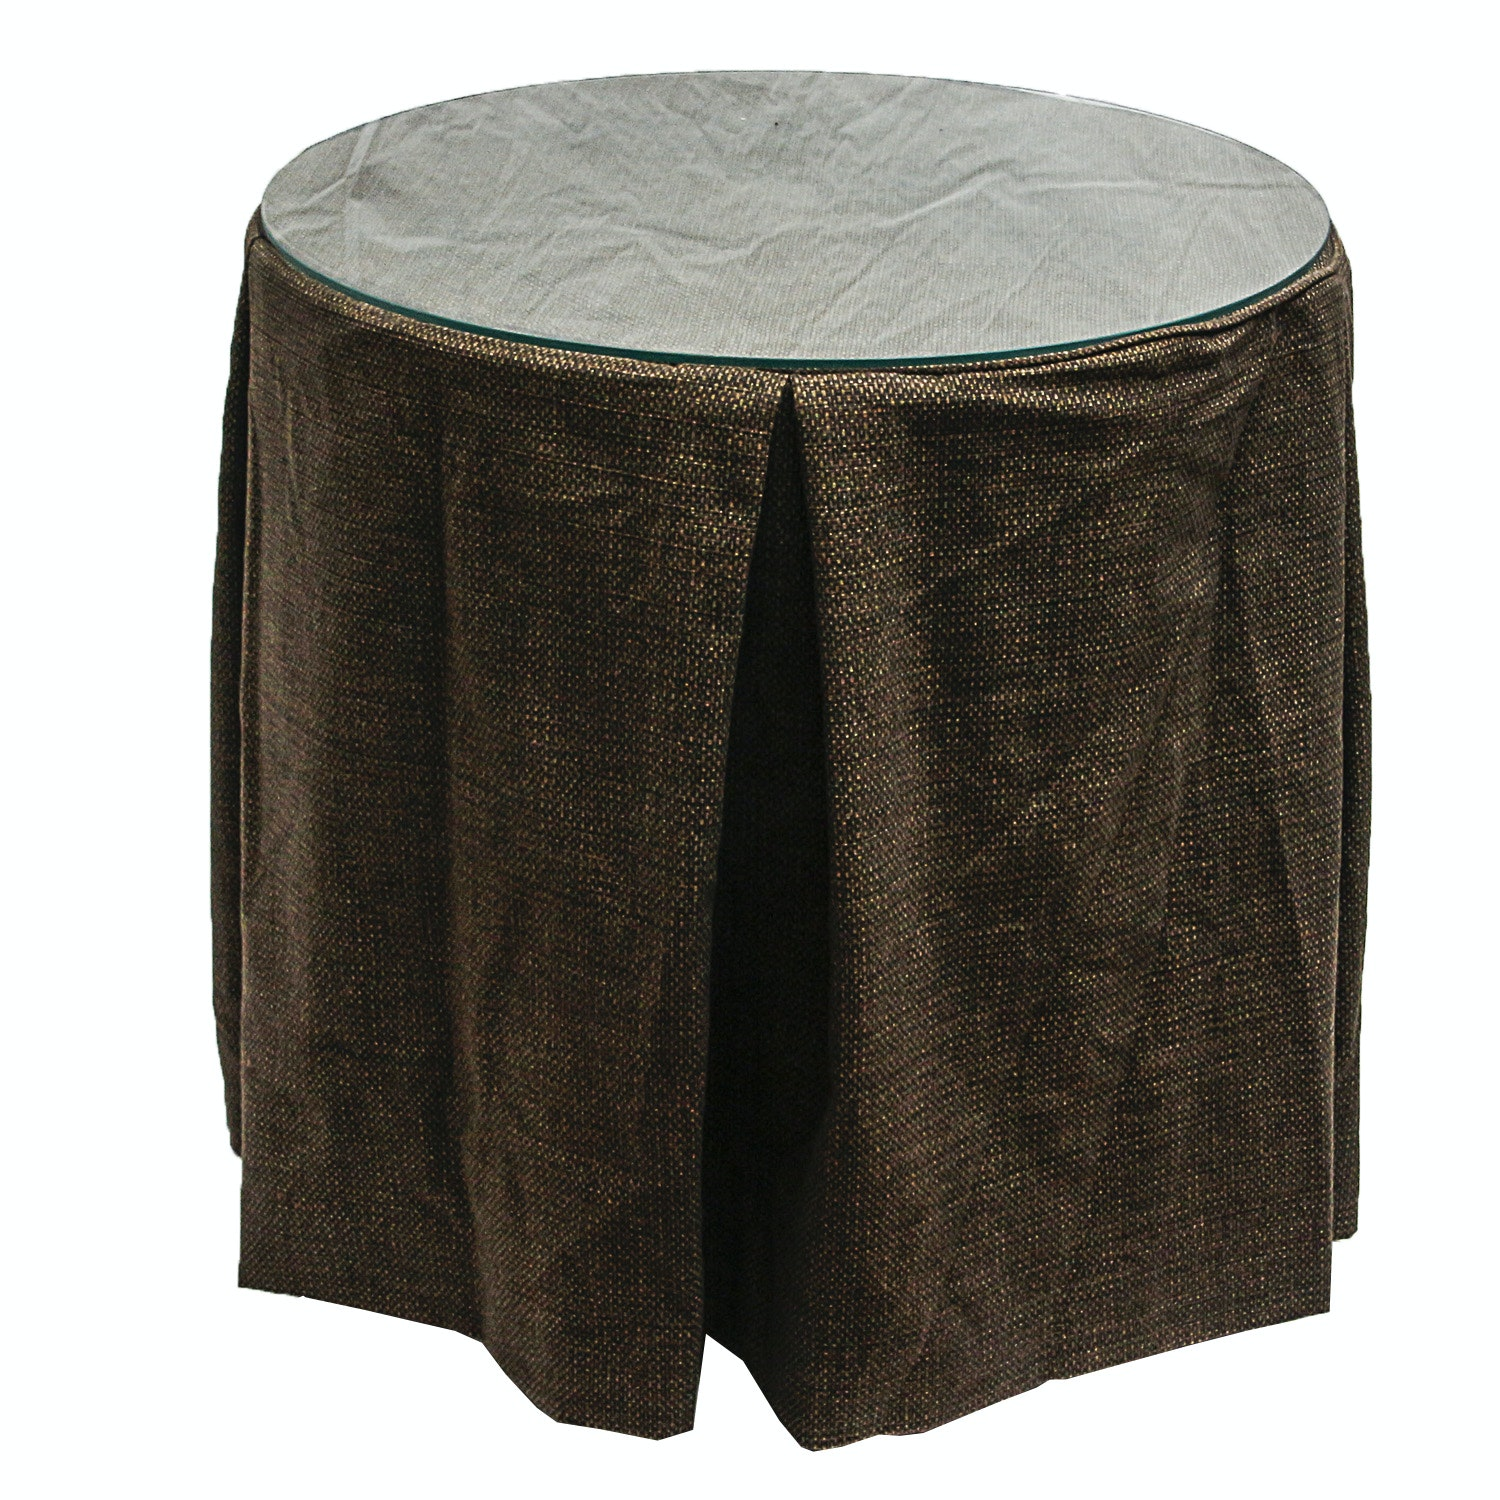 Pair of Covered Accent Tables with Glass Tops